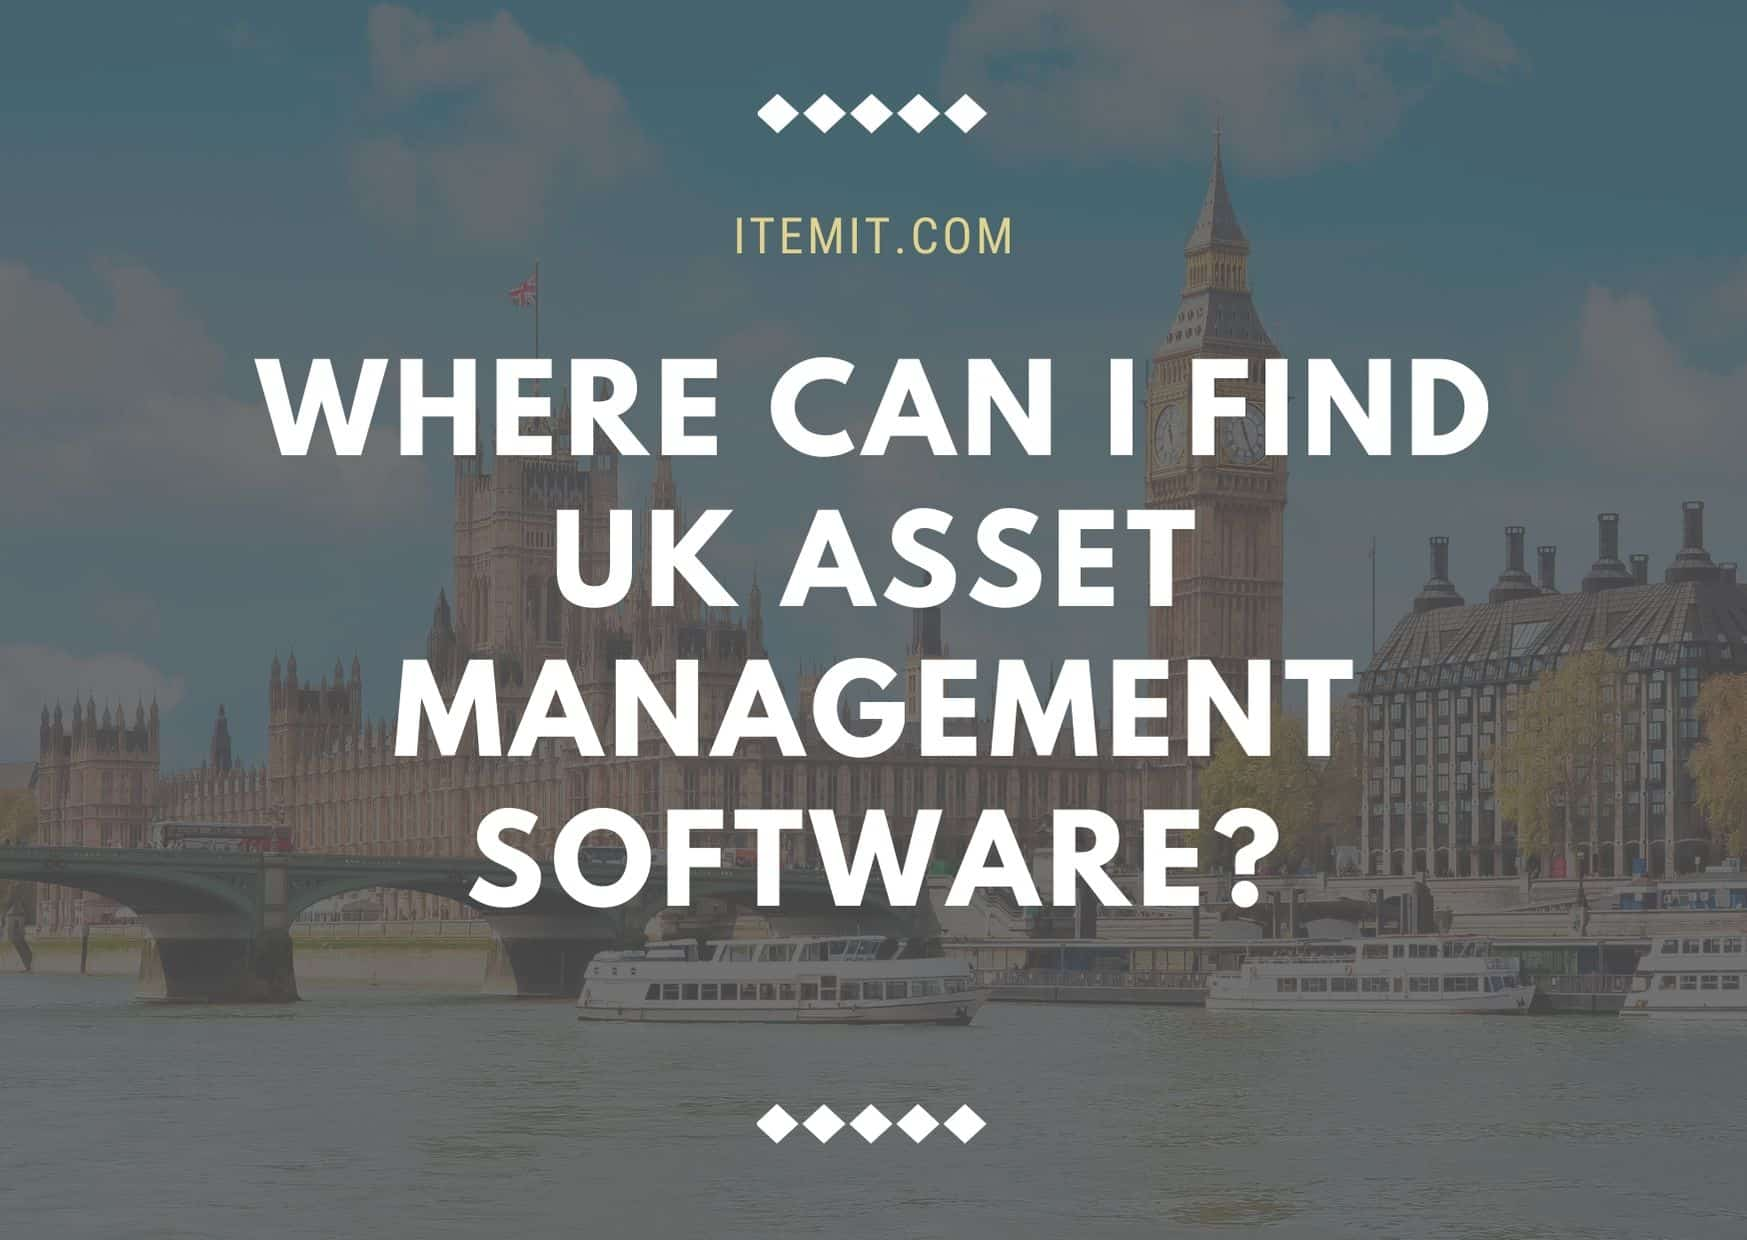 UK asset management software, where can I find it?